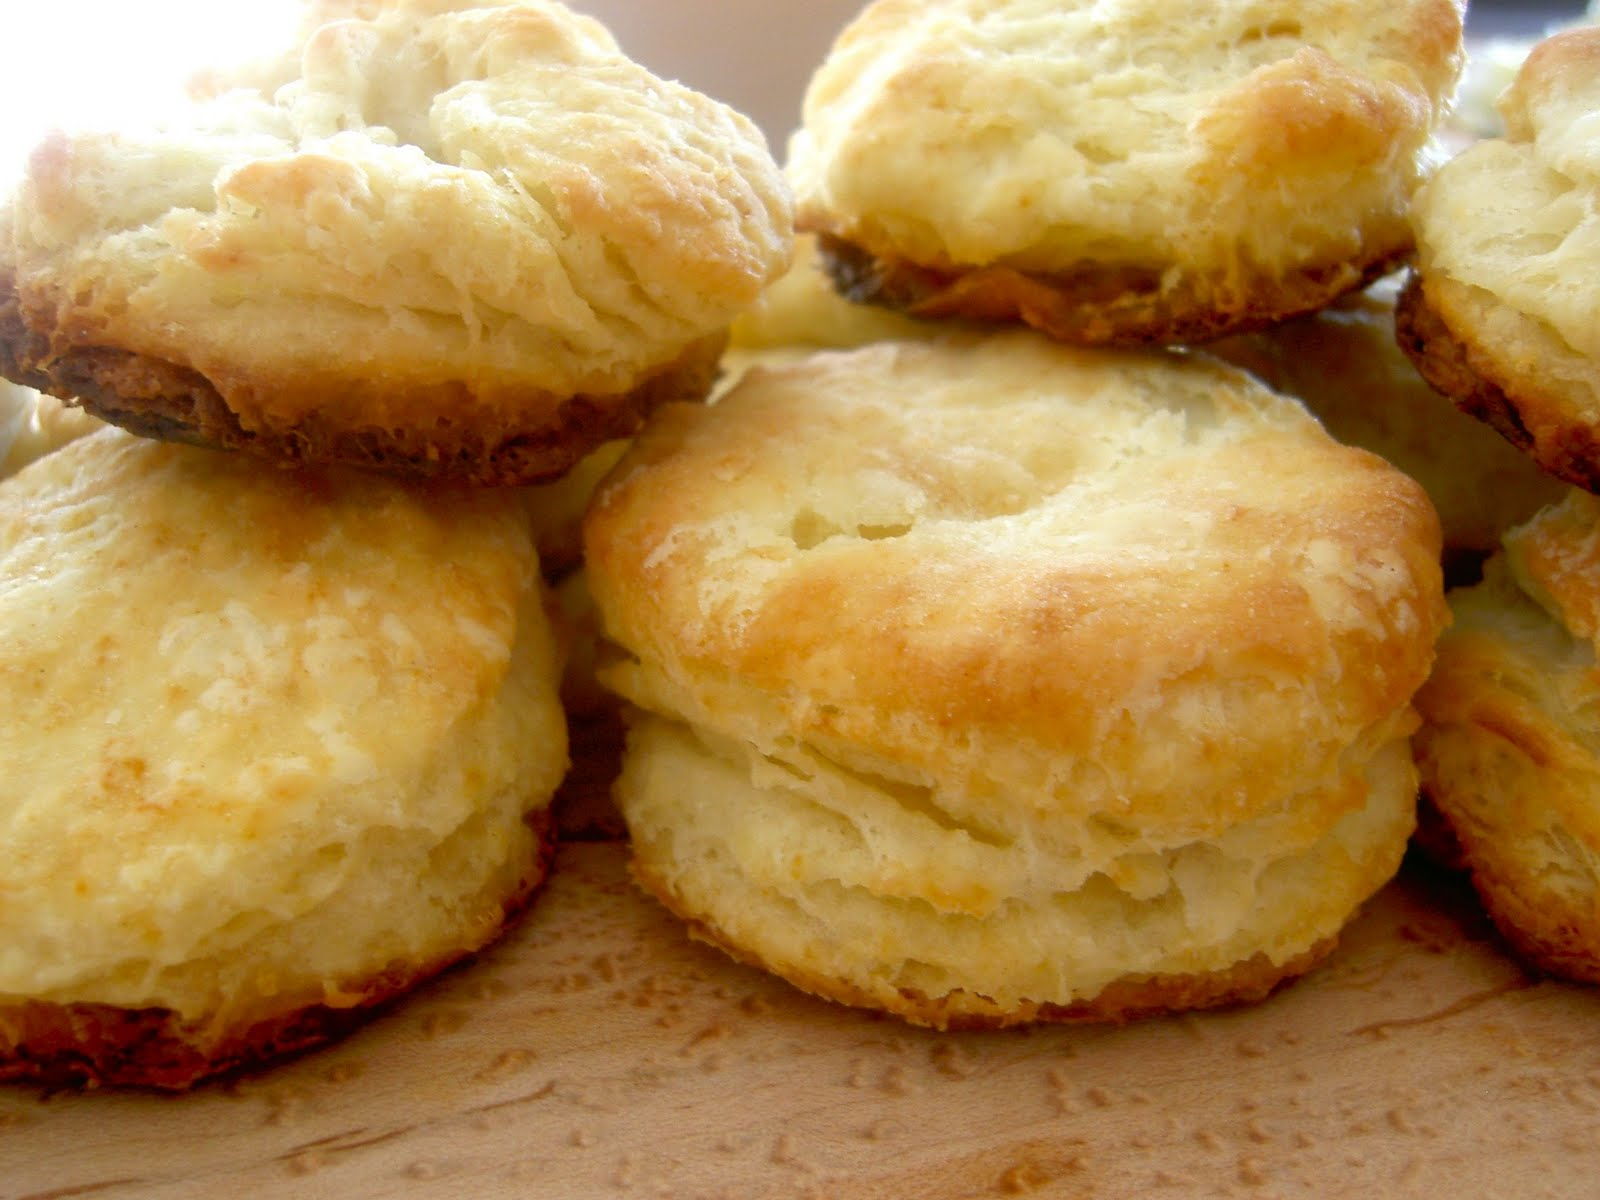 national buttermilk biscuit day | Foodimentary - National ...